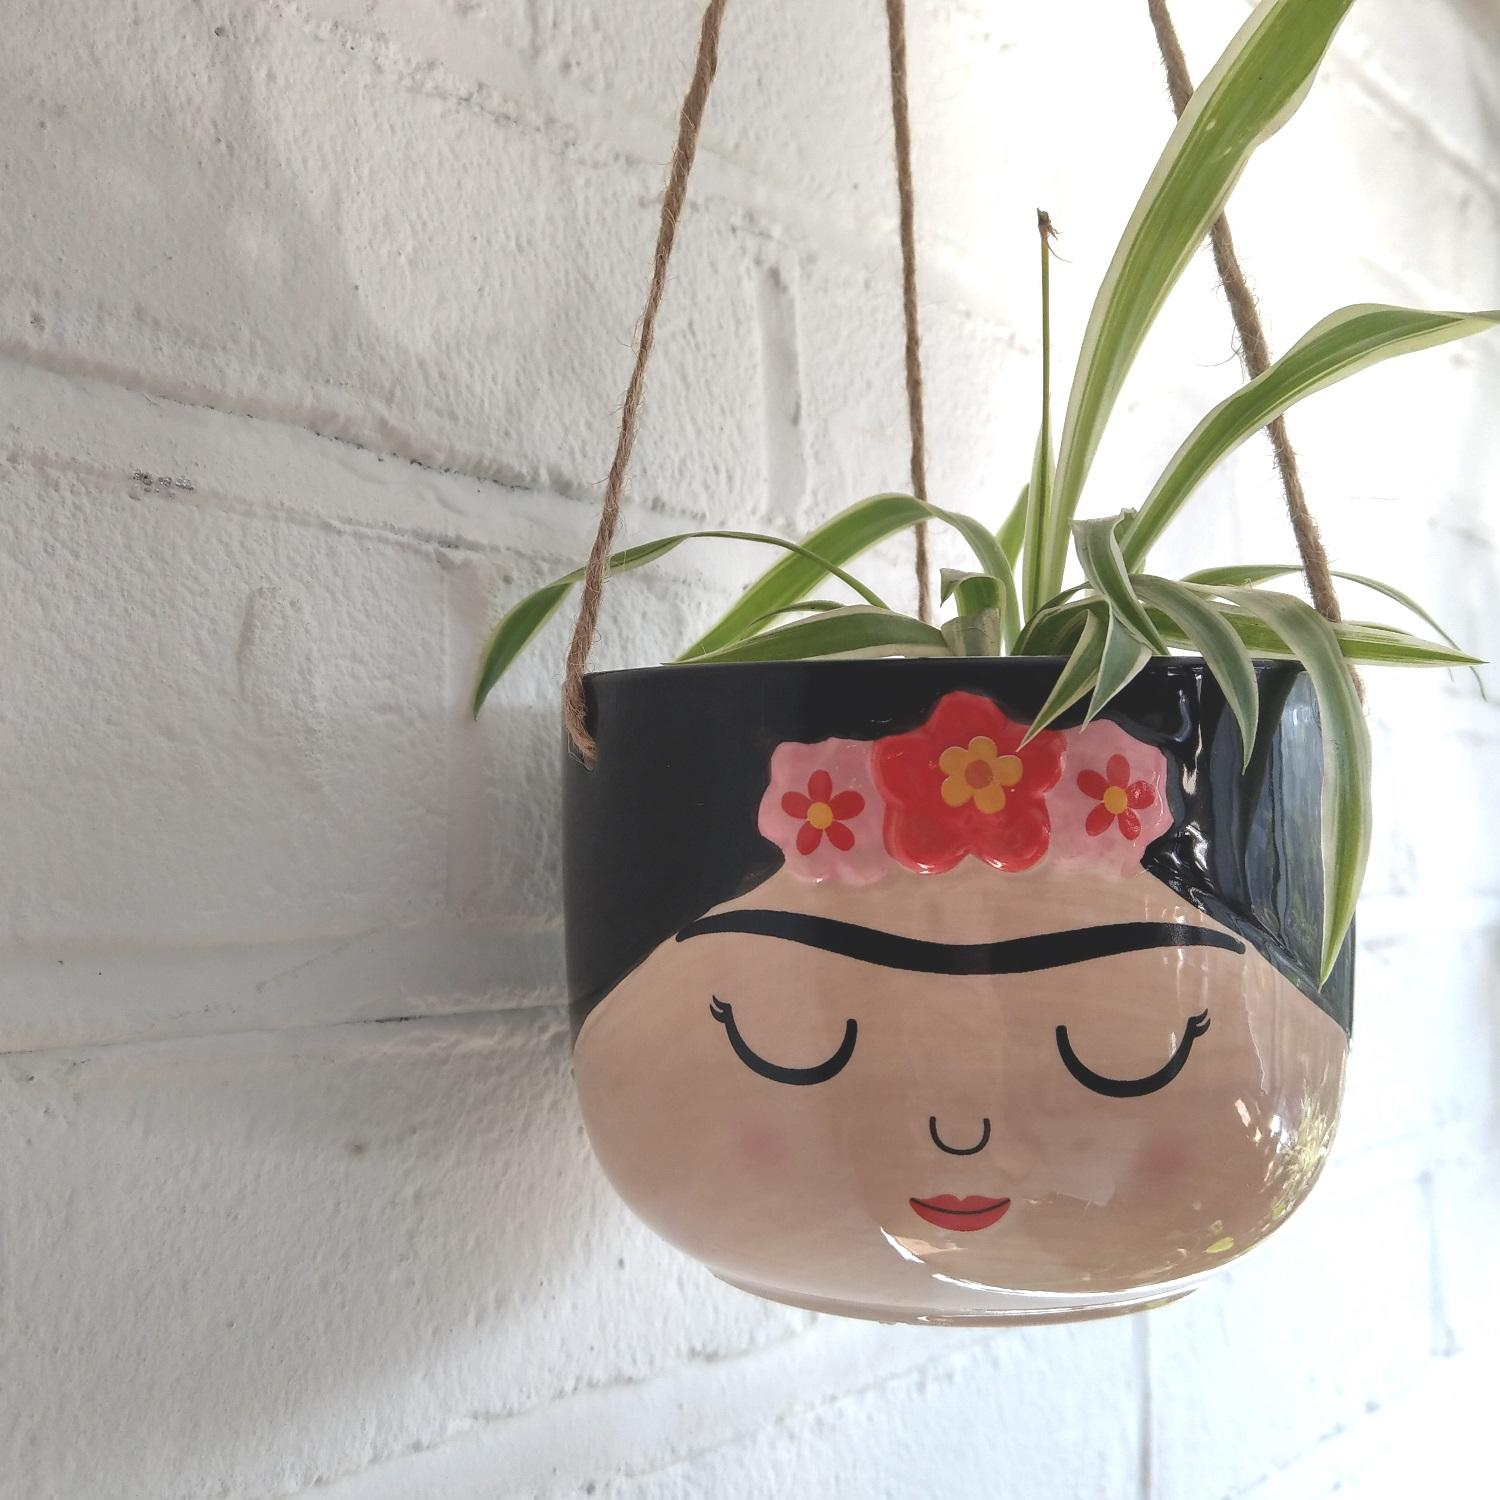 Sass & Belle Frida Hanging Plant Pot at Albert & Moo